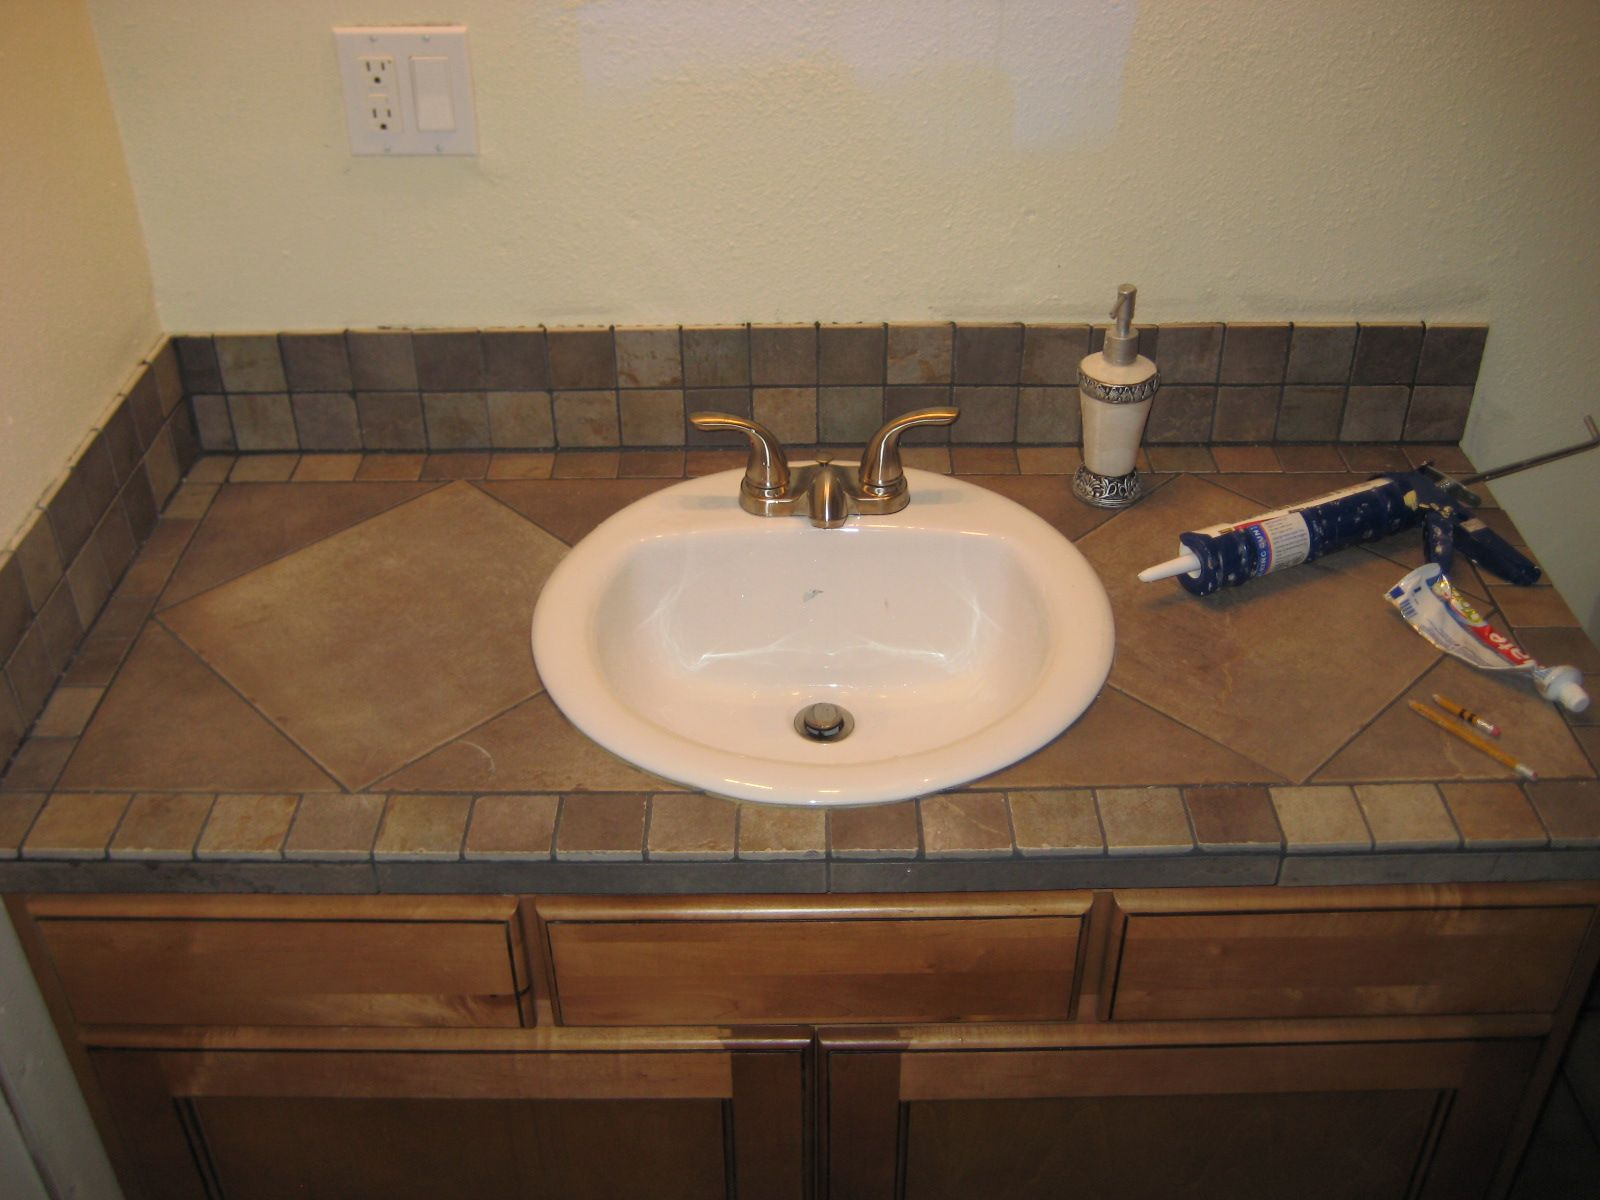 find this pin and more on tile countertops by